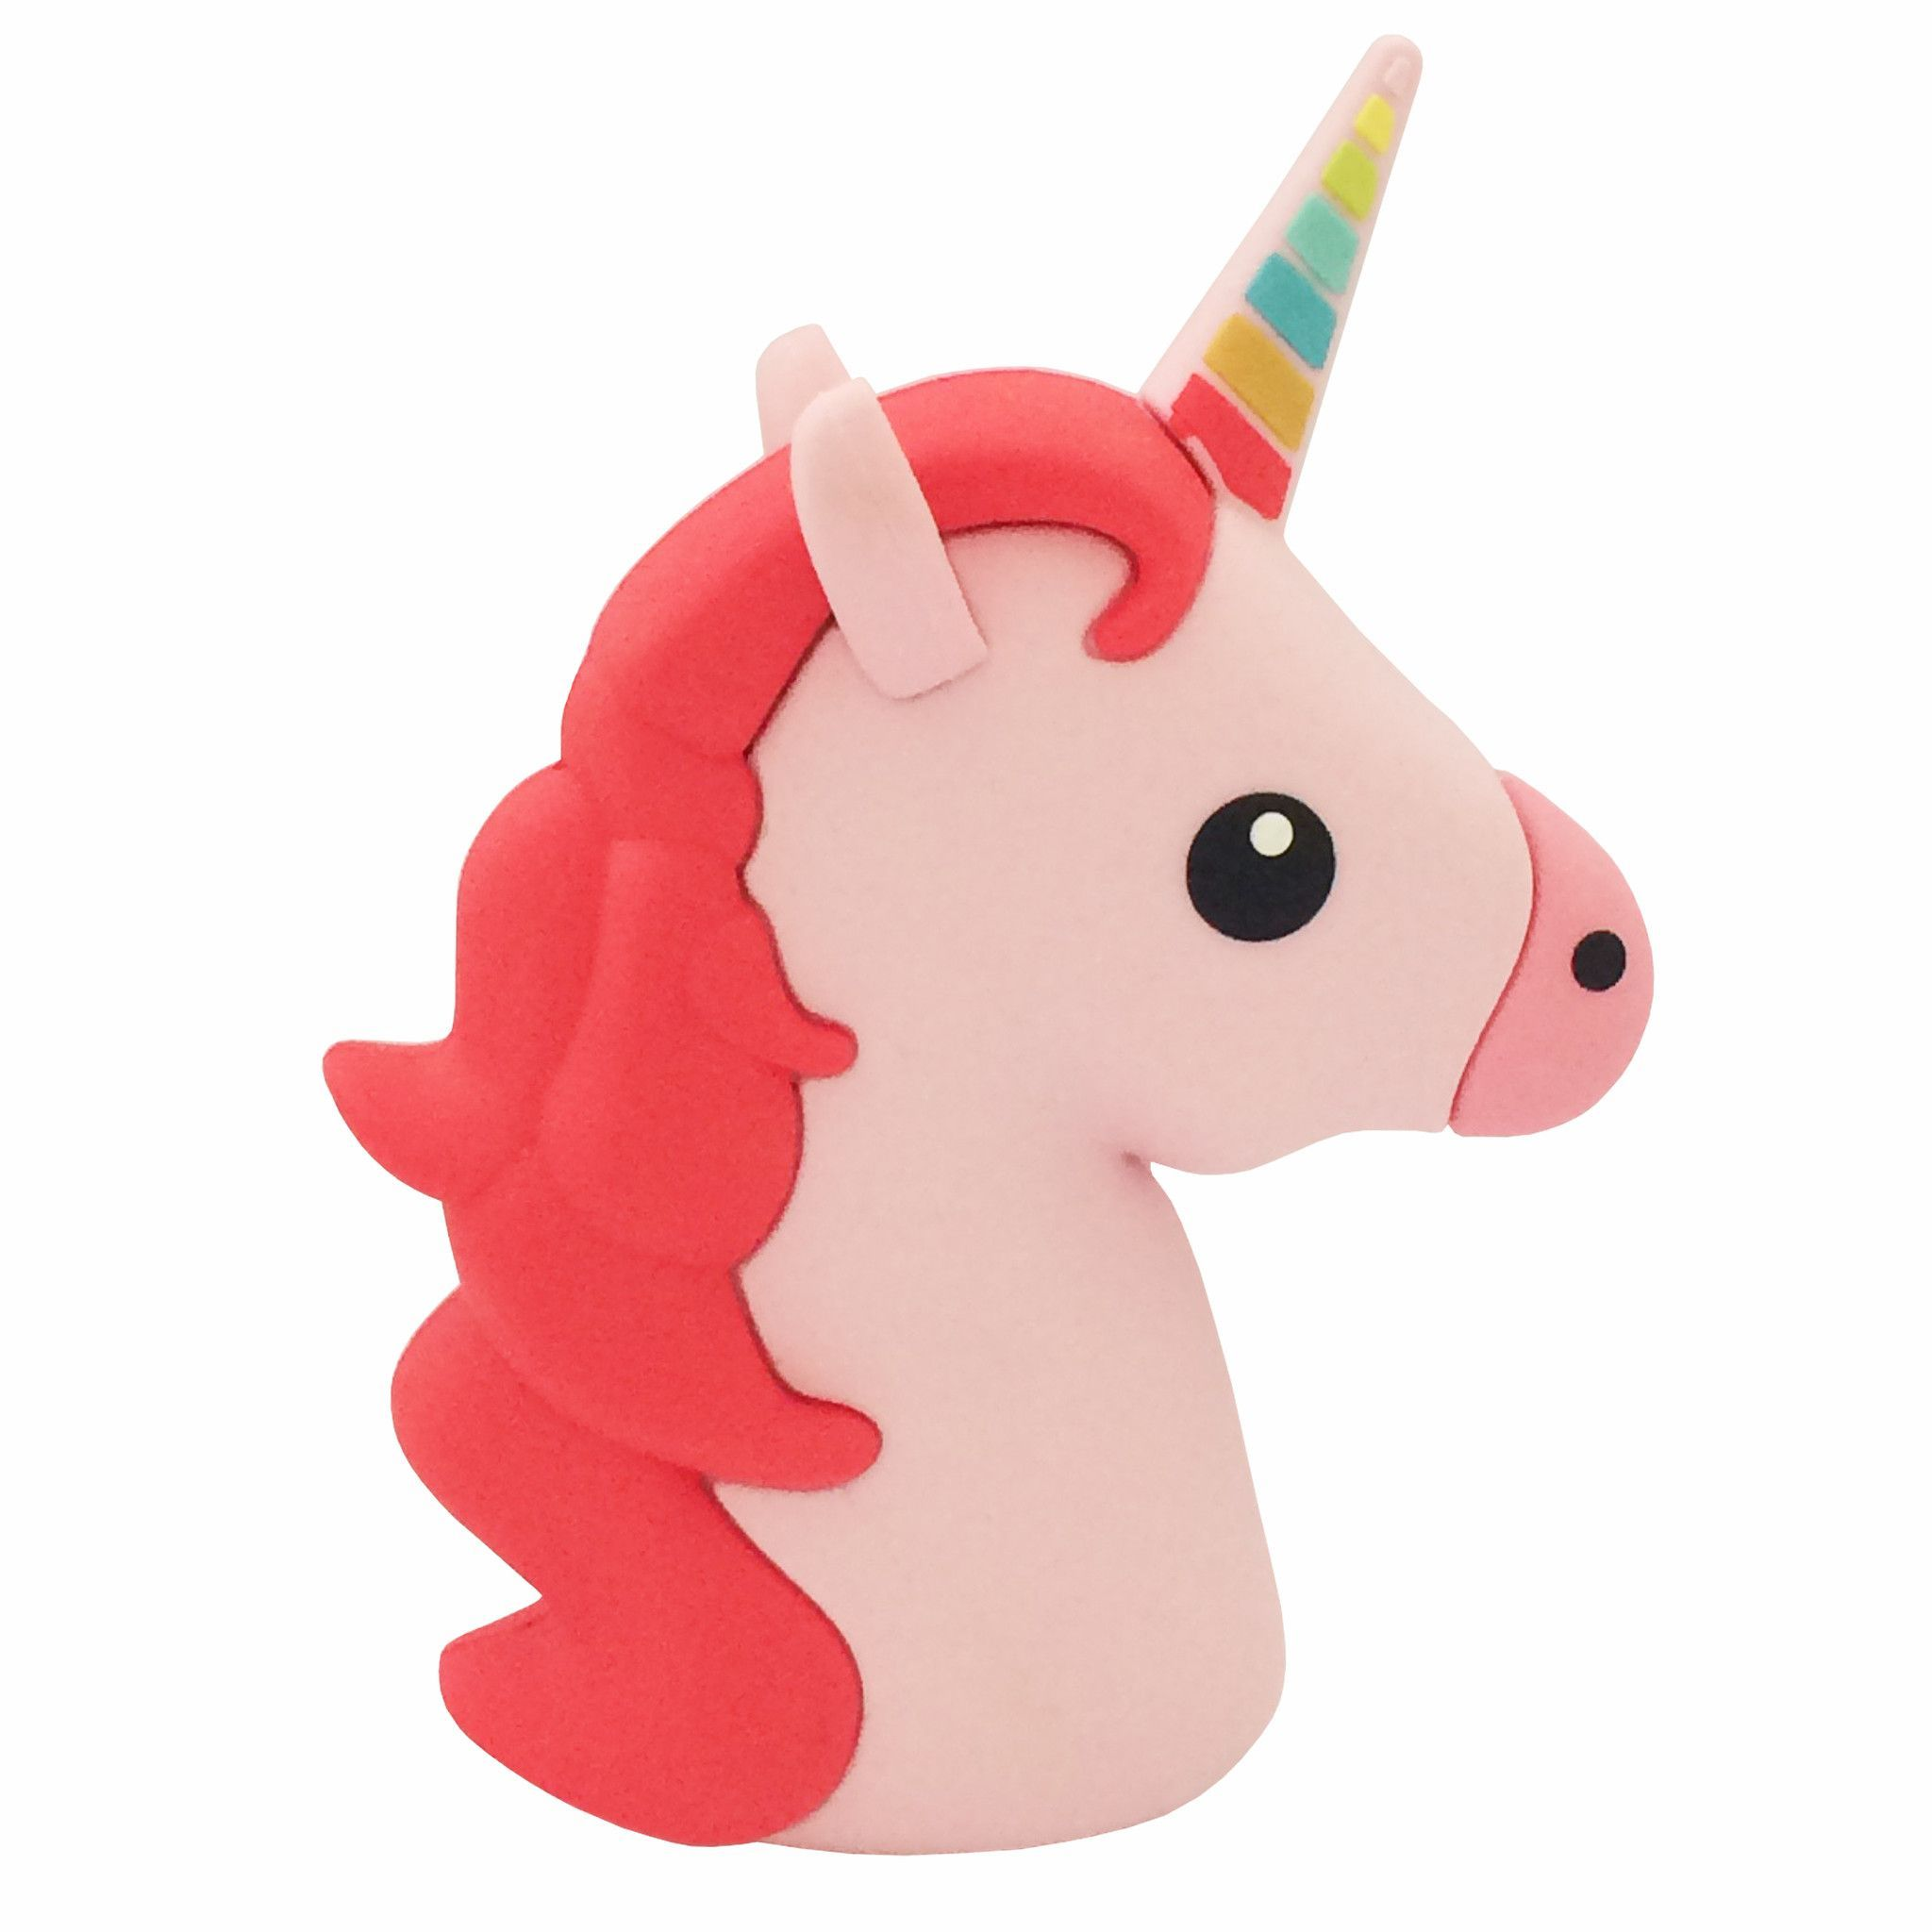 Never Run Out Of Power With This Fab Majestic Unicorn Emoji Power Bank Charger A Fun And Effective Way To Keep All Unicorn Phone Case Unicorn Emoji Powerbank